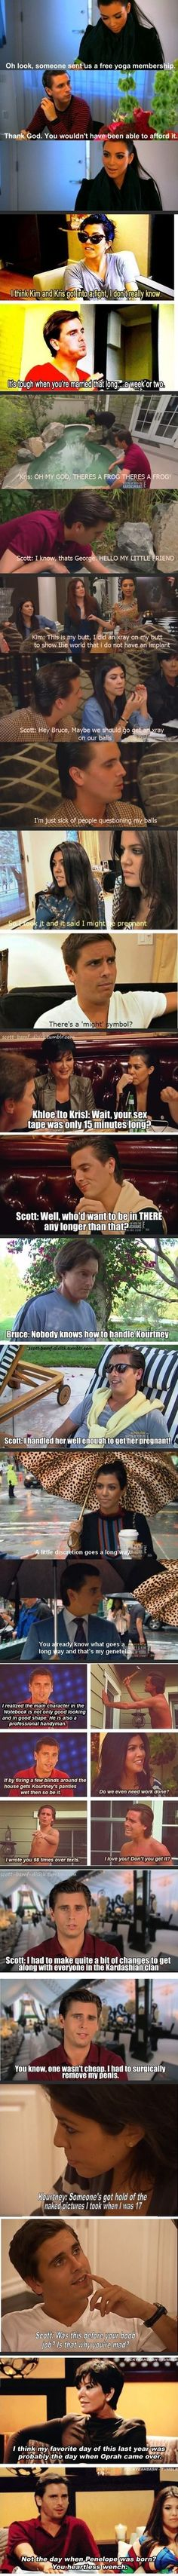 Lord Disick for the win.